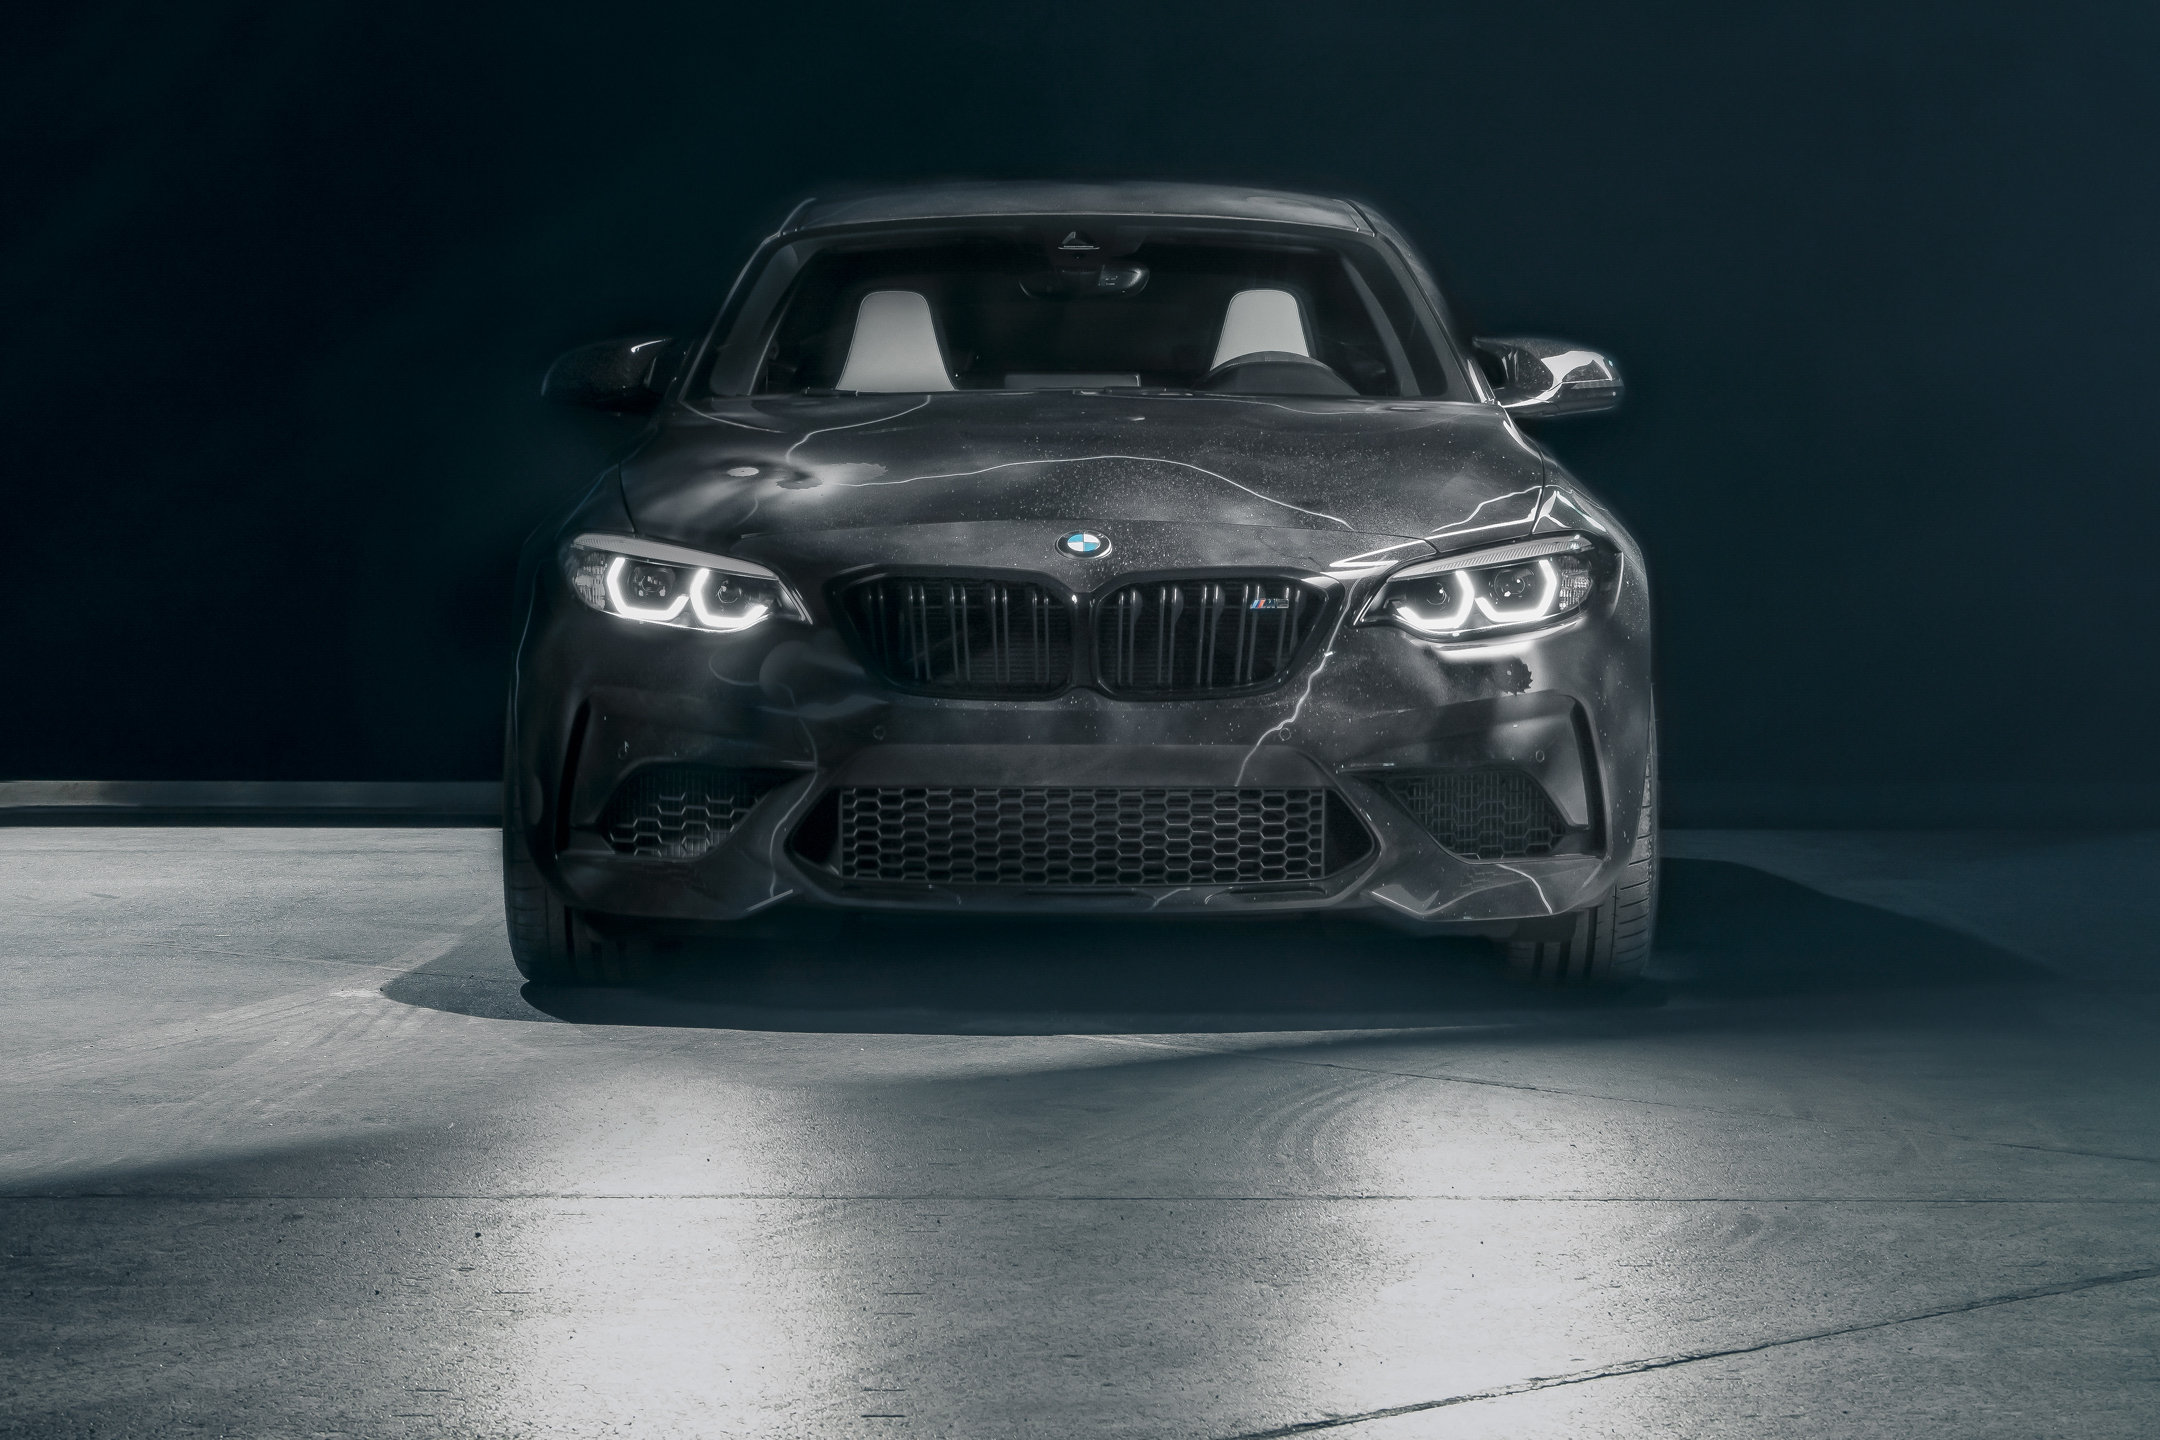 BMW M2 by FUTURA 2000 - Street Art Car - 2020 - front-face / face avant - zoom